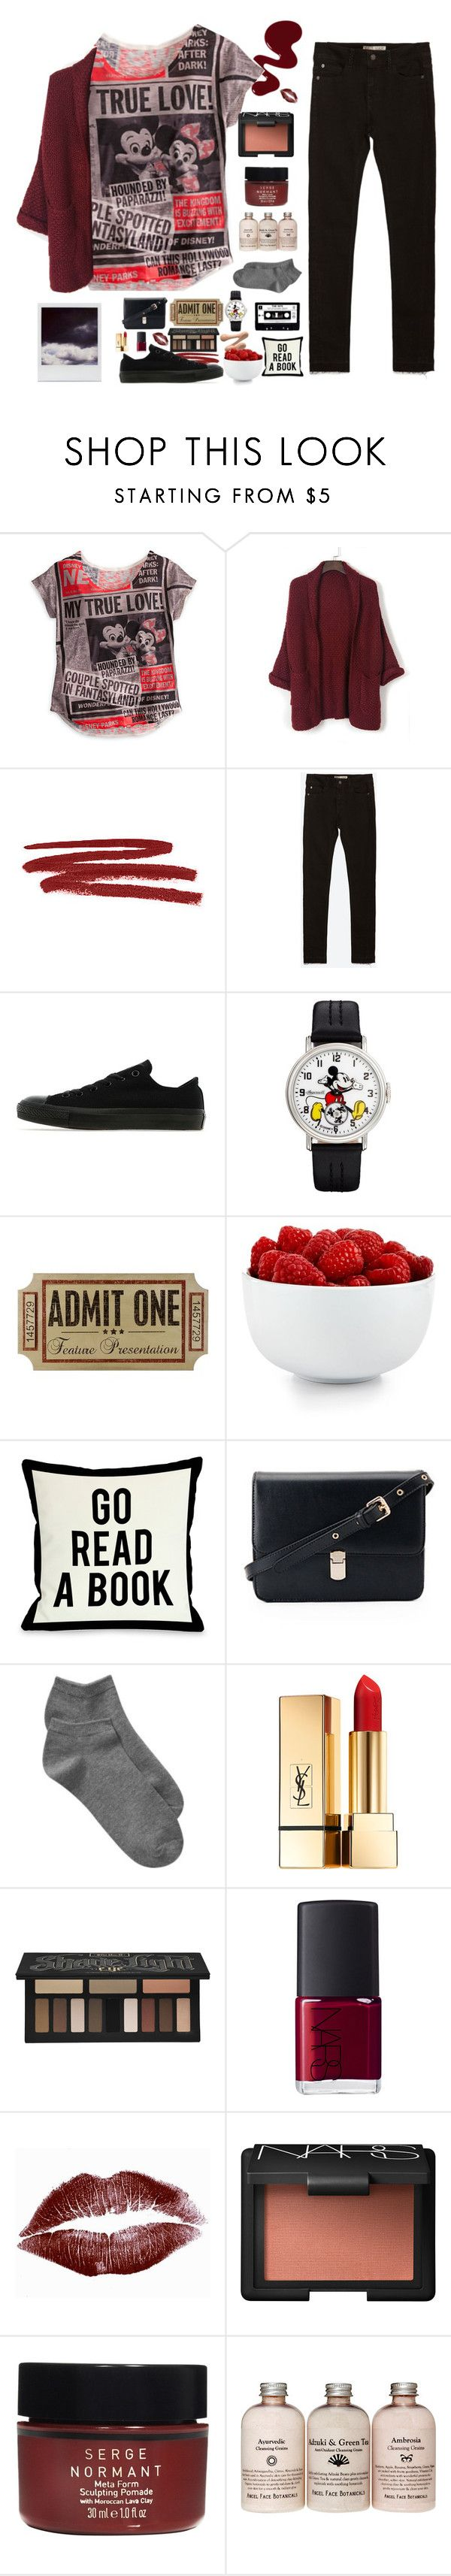 """""""Update"""" by polystar10 ❤ liked on Polyvore featuring moda, Disney, WithChic, Bobbi Brown Cosmetics, Zara, Converse, The Cellar, One Bella Casa, Gap i Yves Saint Laurent"""